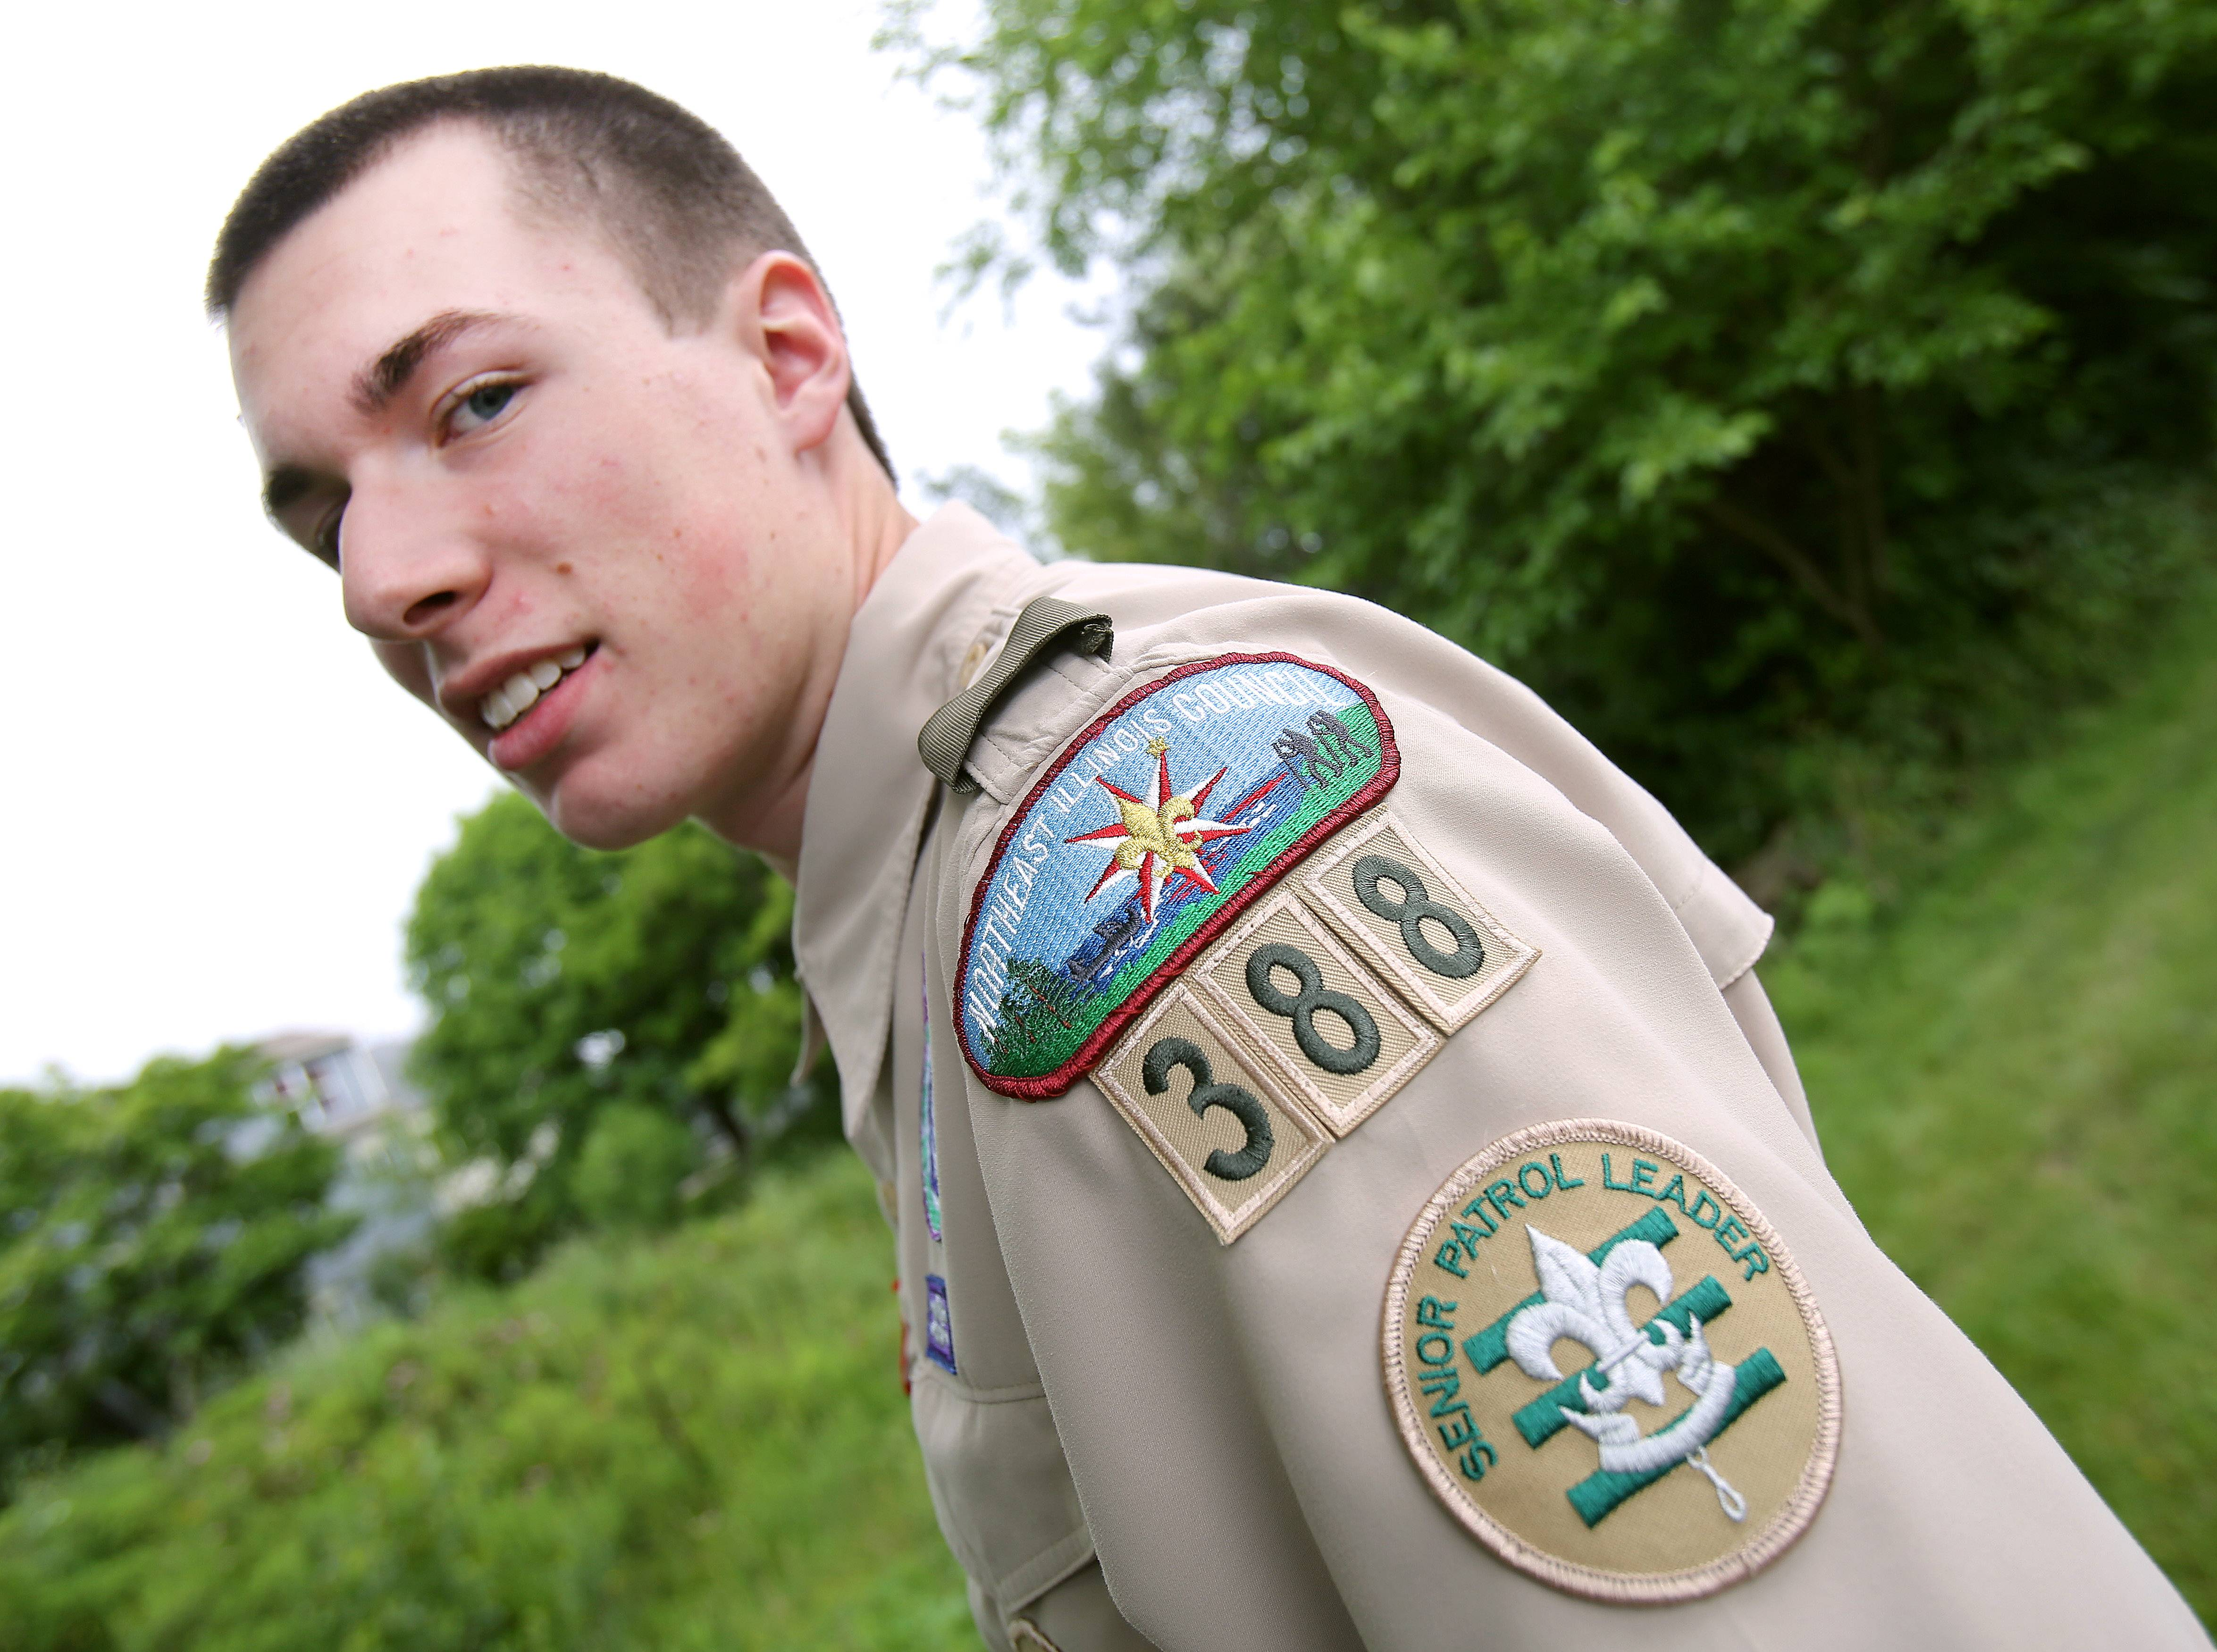 Jack Readdy of Mundelein, 16, started a geocaching program with the Mundelein Park & Recreation District for his Eagle Scout project.